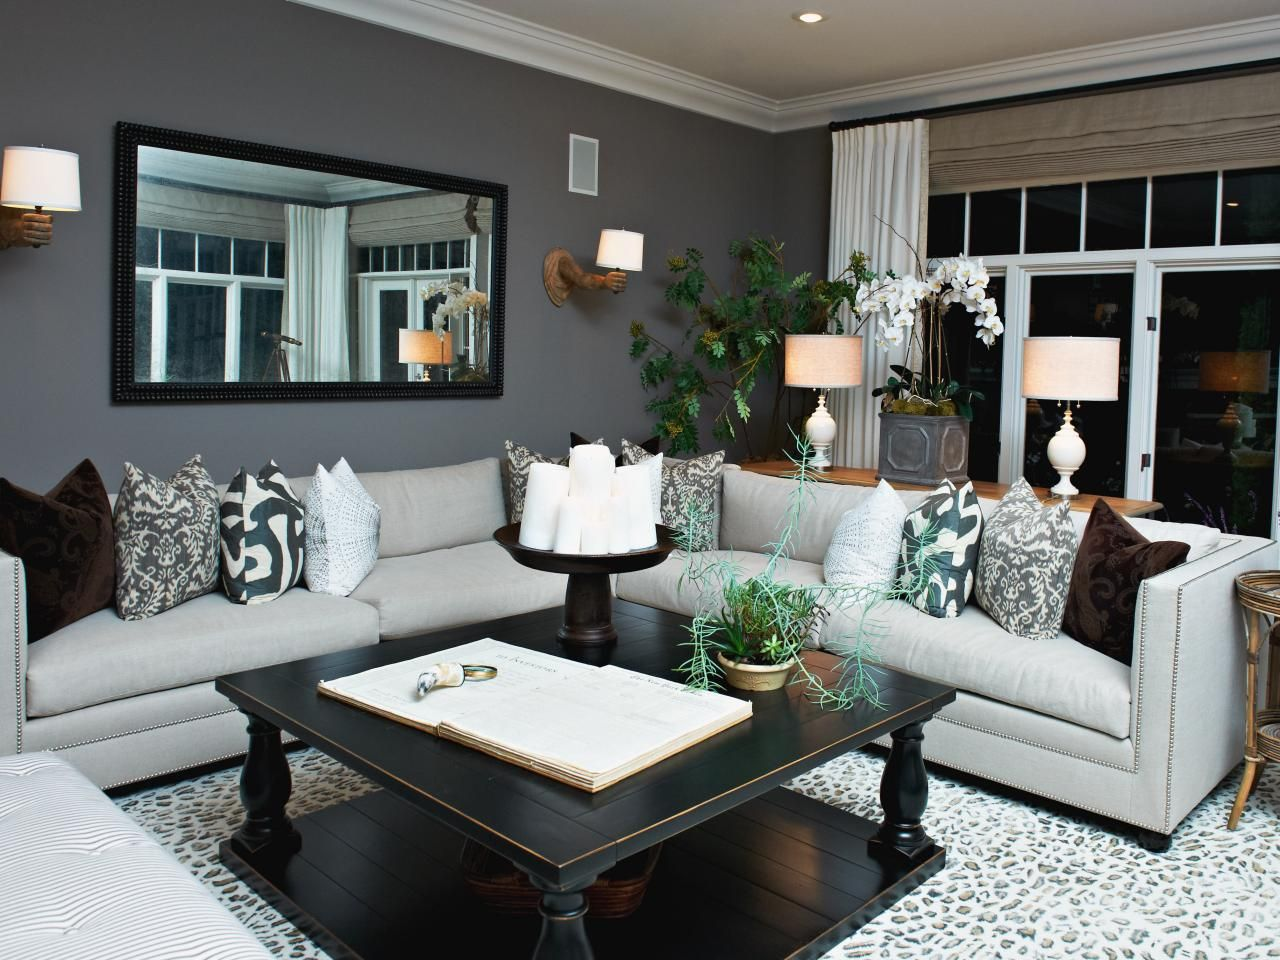 Gray Living Room Design Top 50 Pinterest Gallery 2014  Hgtv Decorating And 50Th